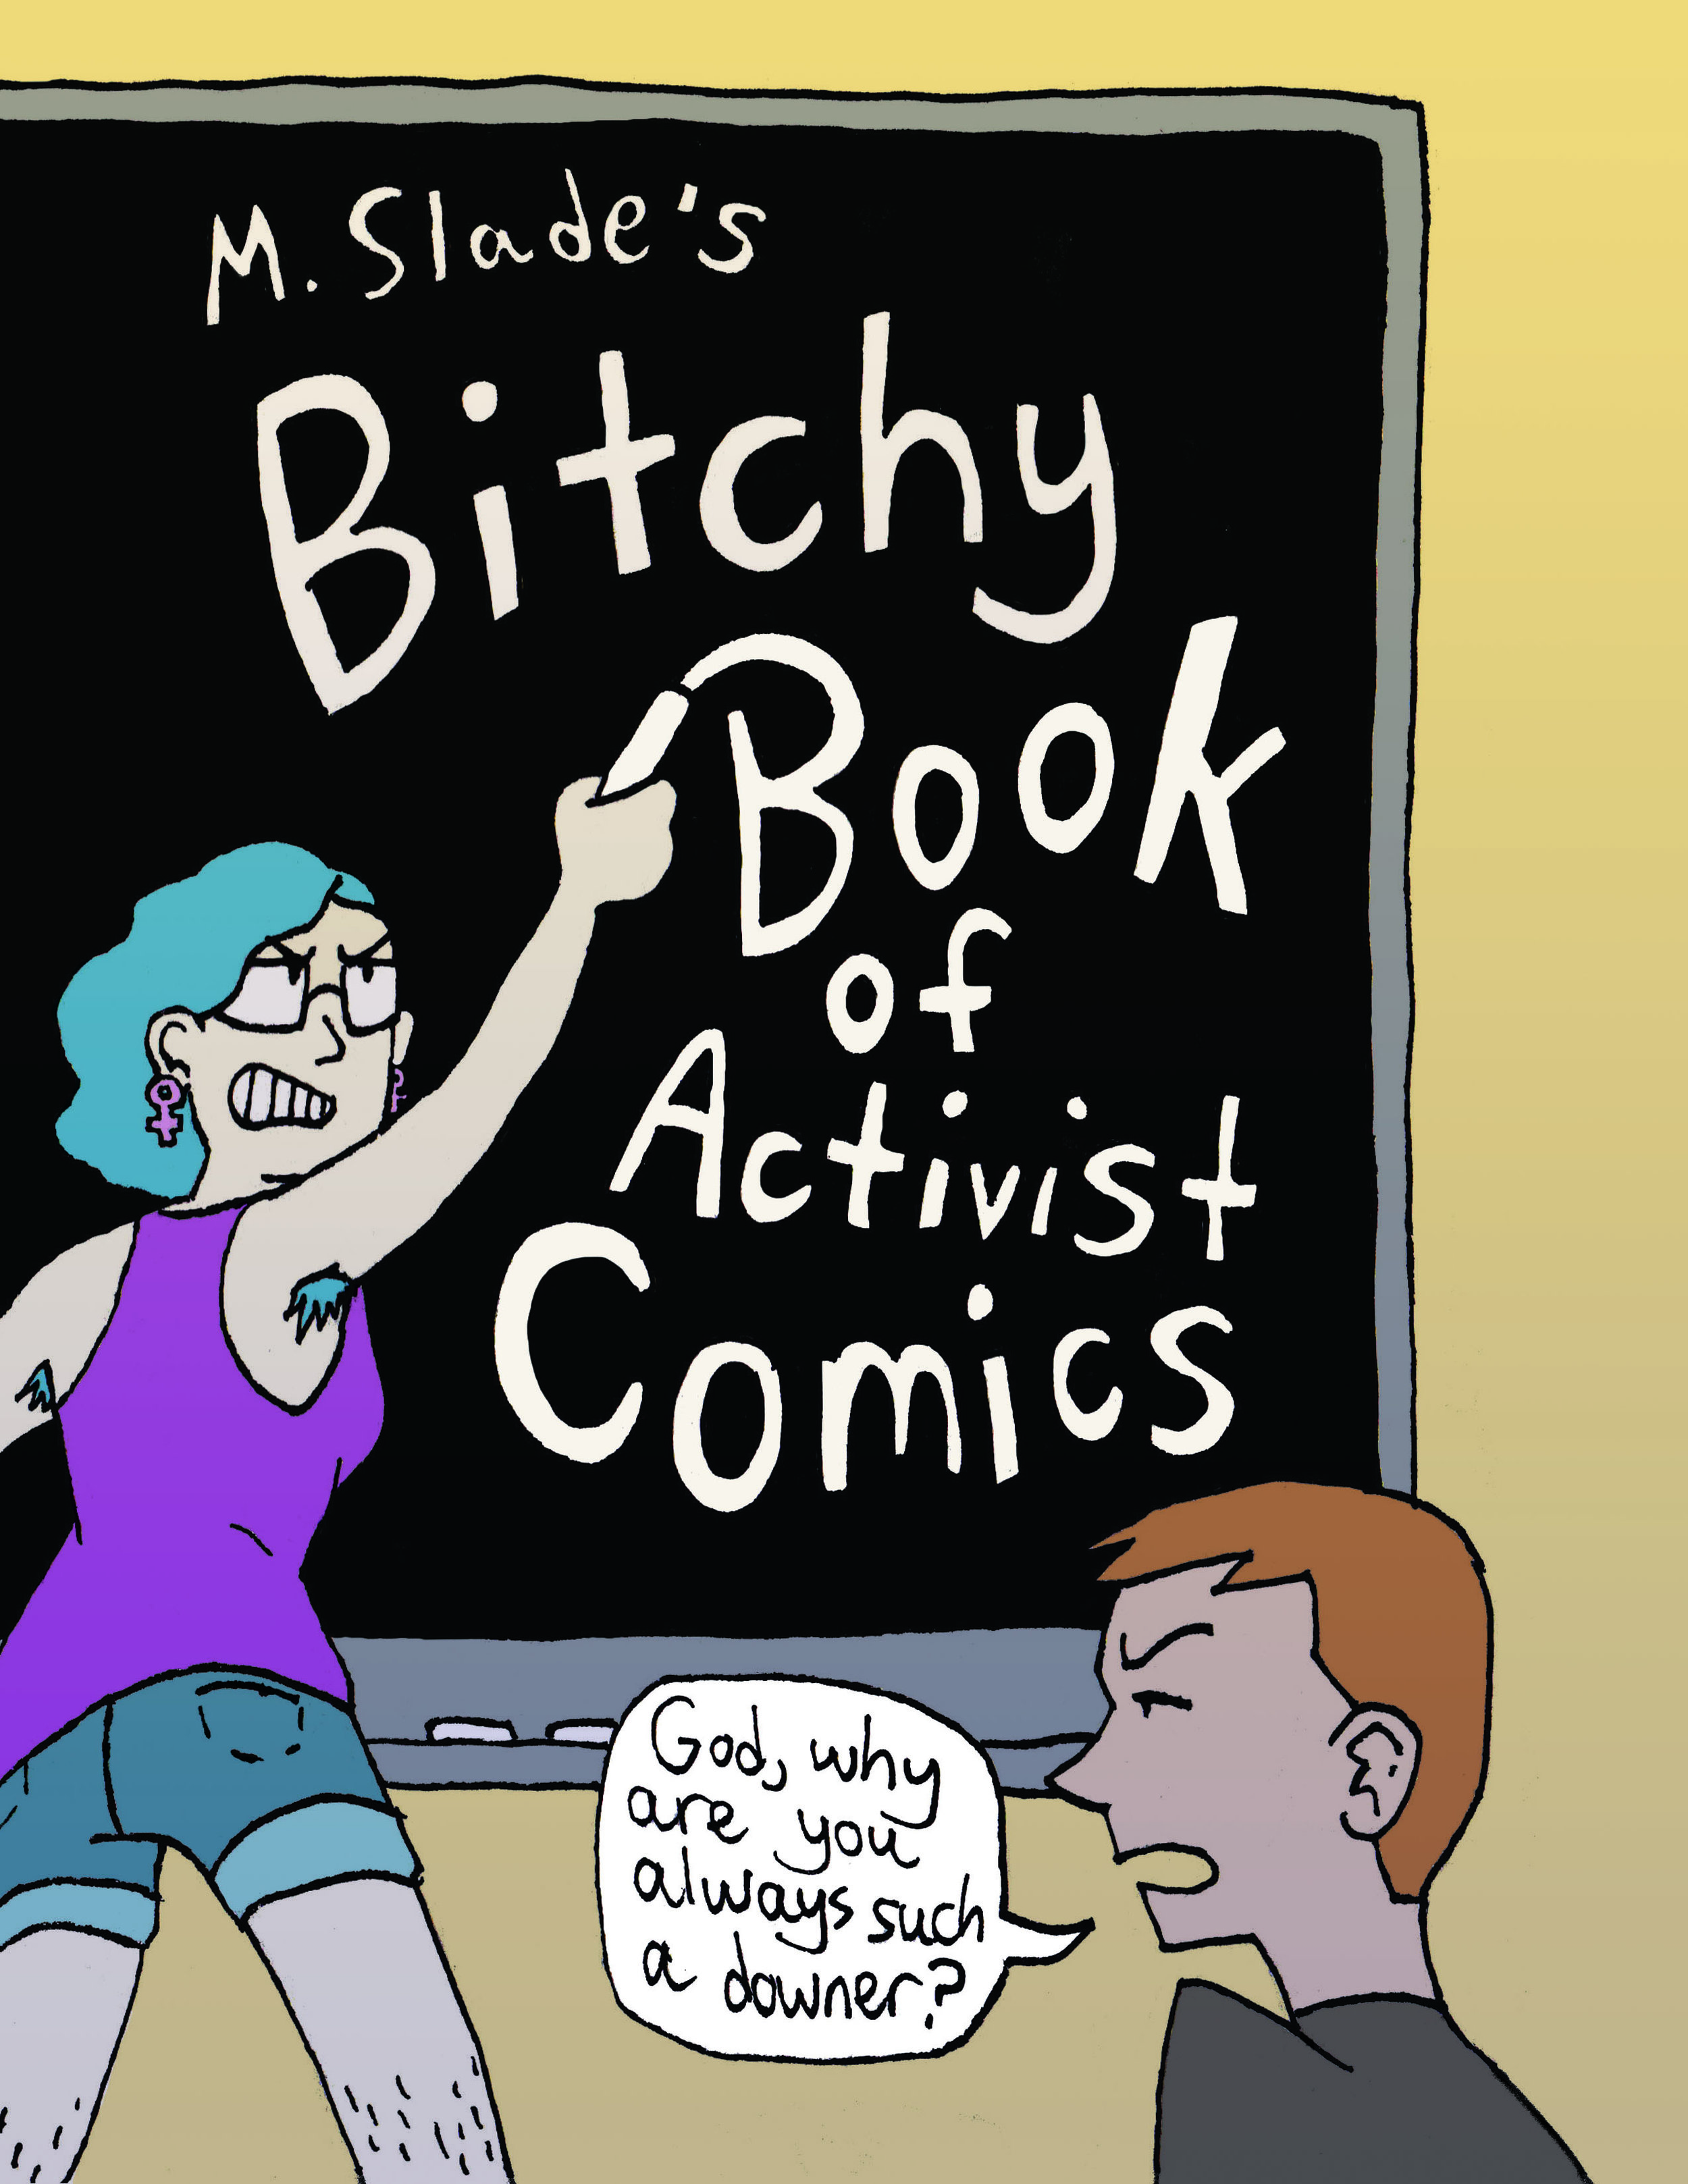 Bitchy Book Of Activist Comics - A zine I created for my senior project; this features artwork on a number of social justice topics I was thinking about at the time